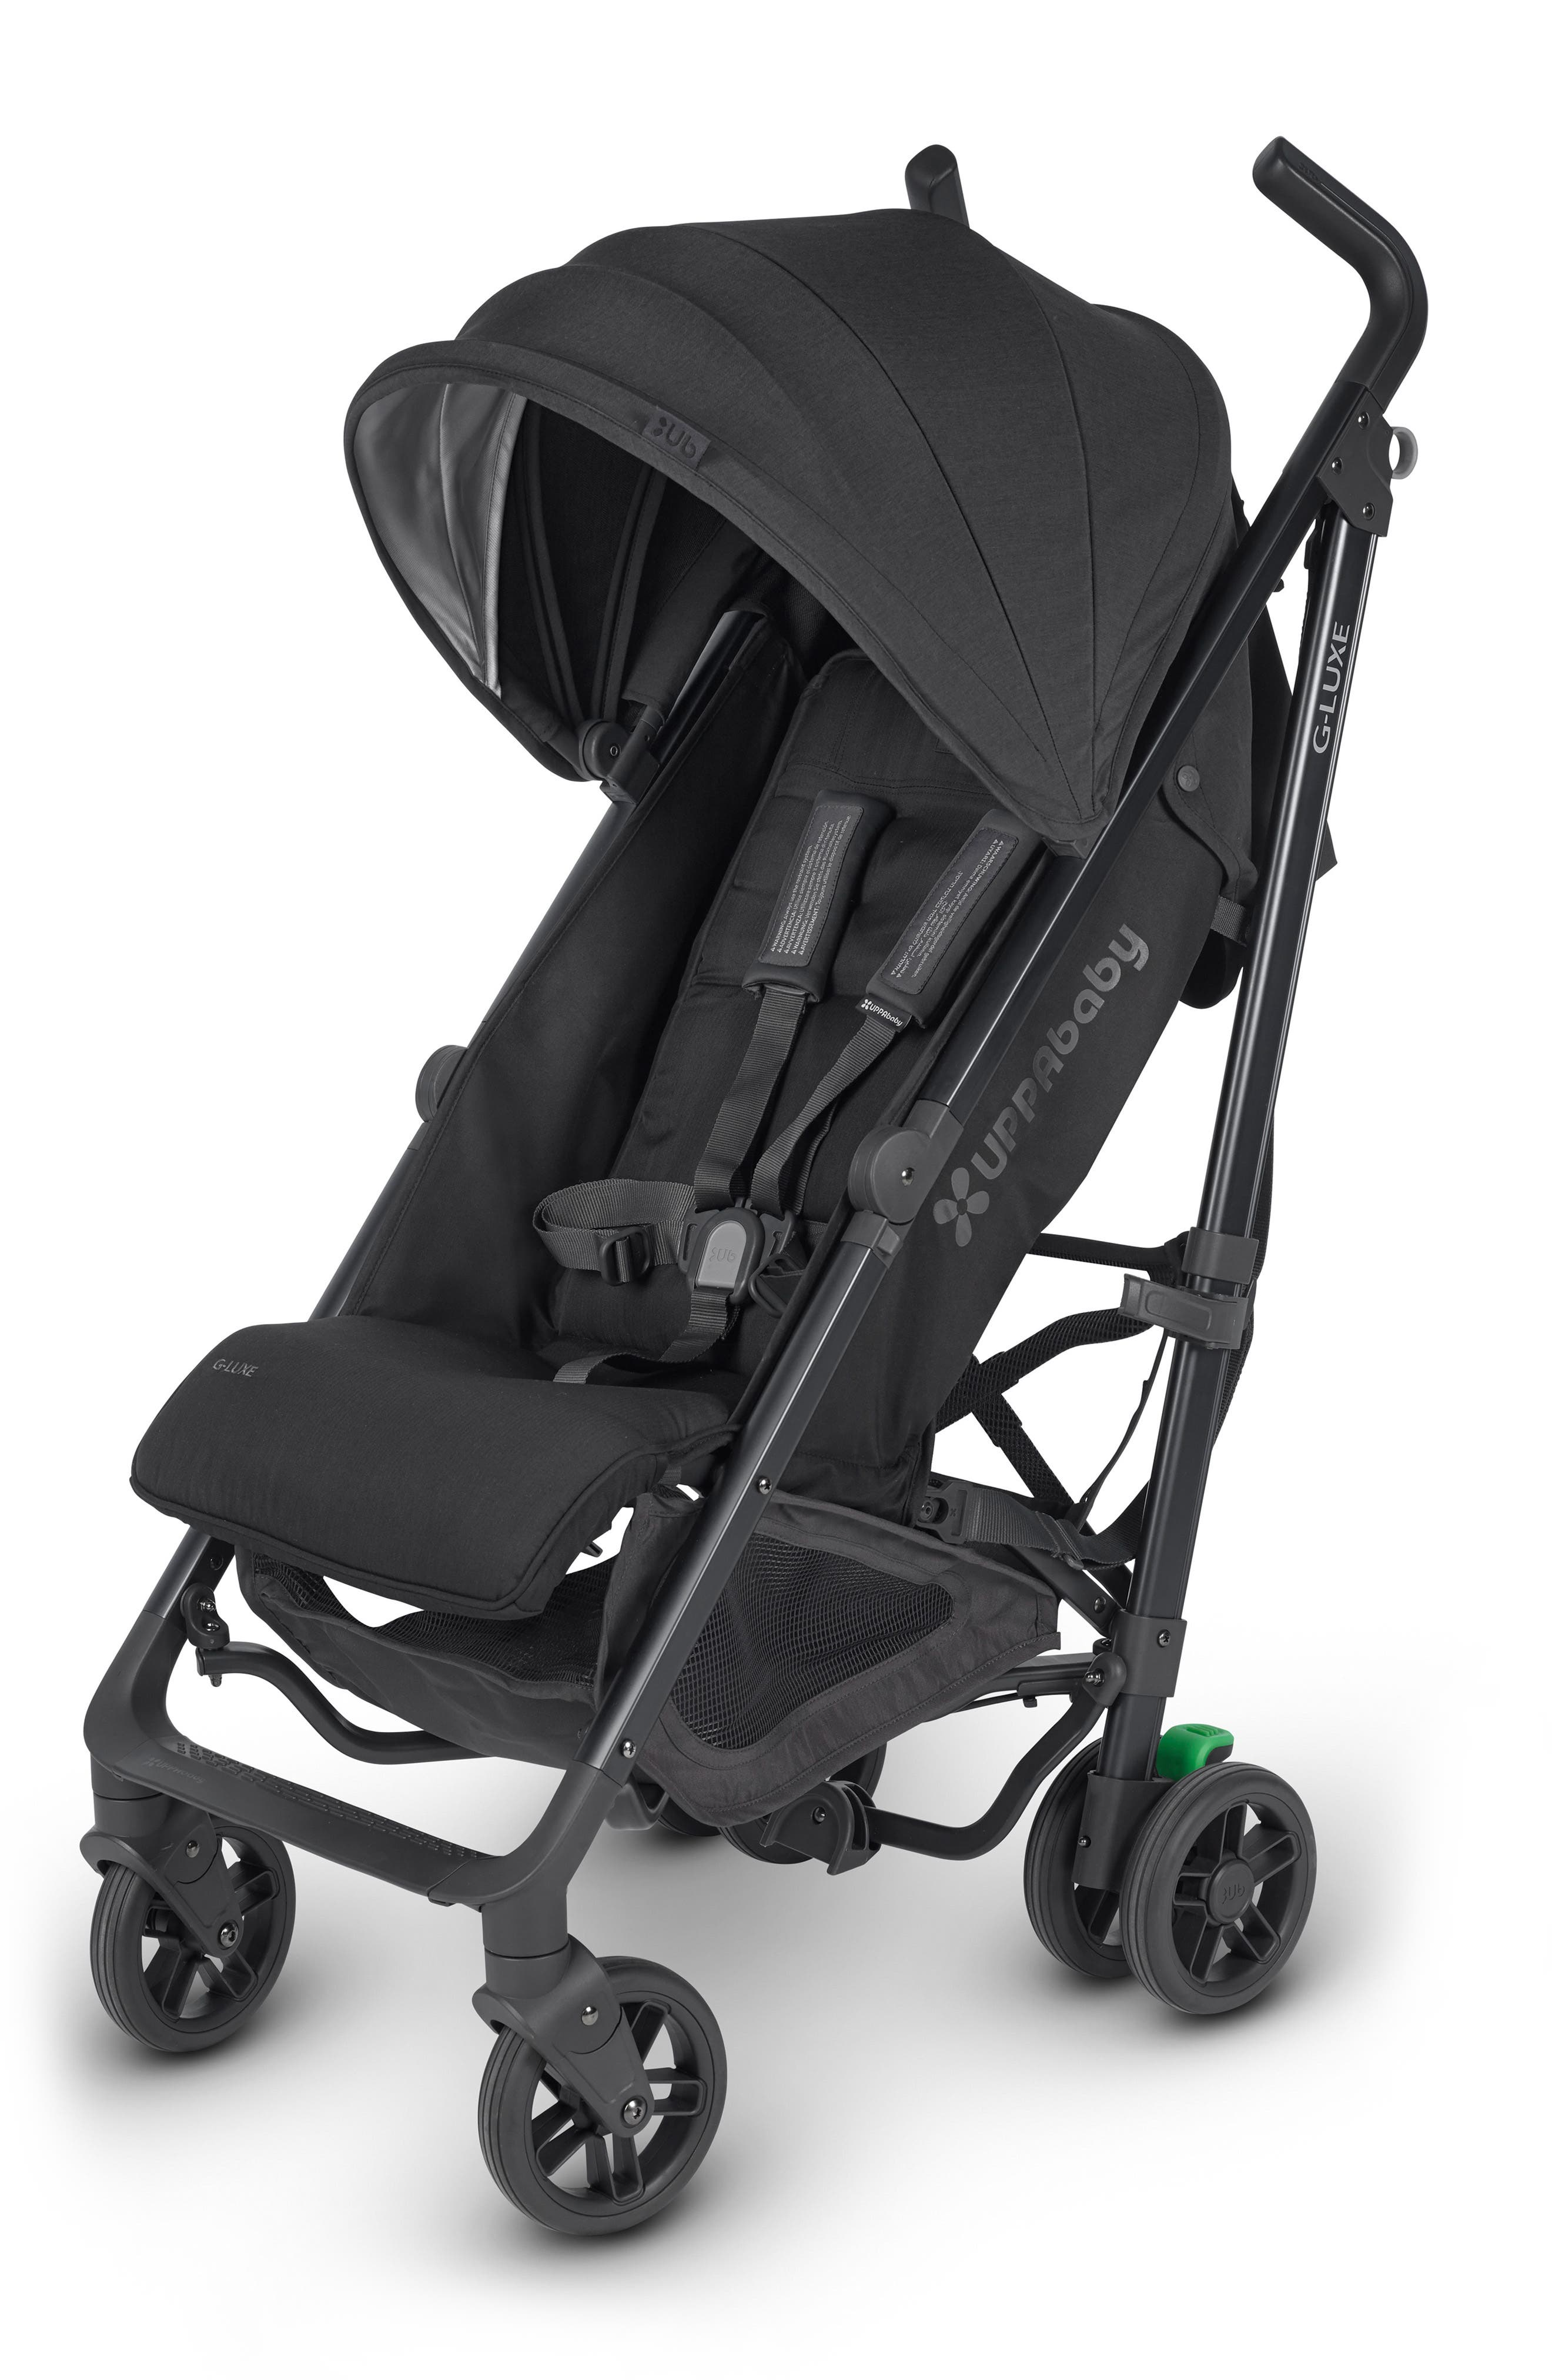 G-LUXE 2018 Reclining Umbrella Stroller,                         Main,                         color, JAKE BLACK/ CARBON